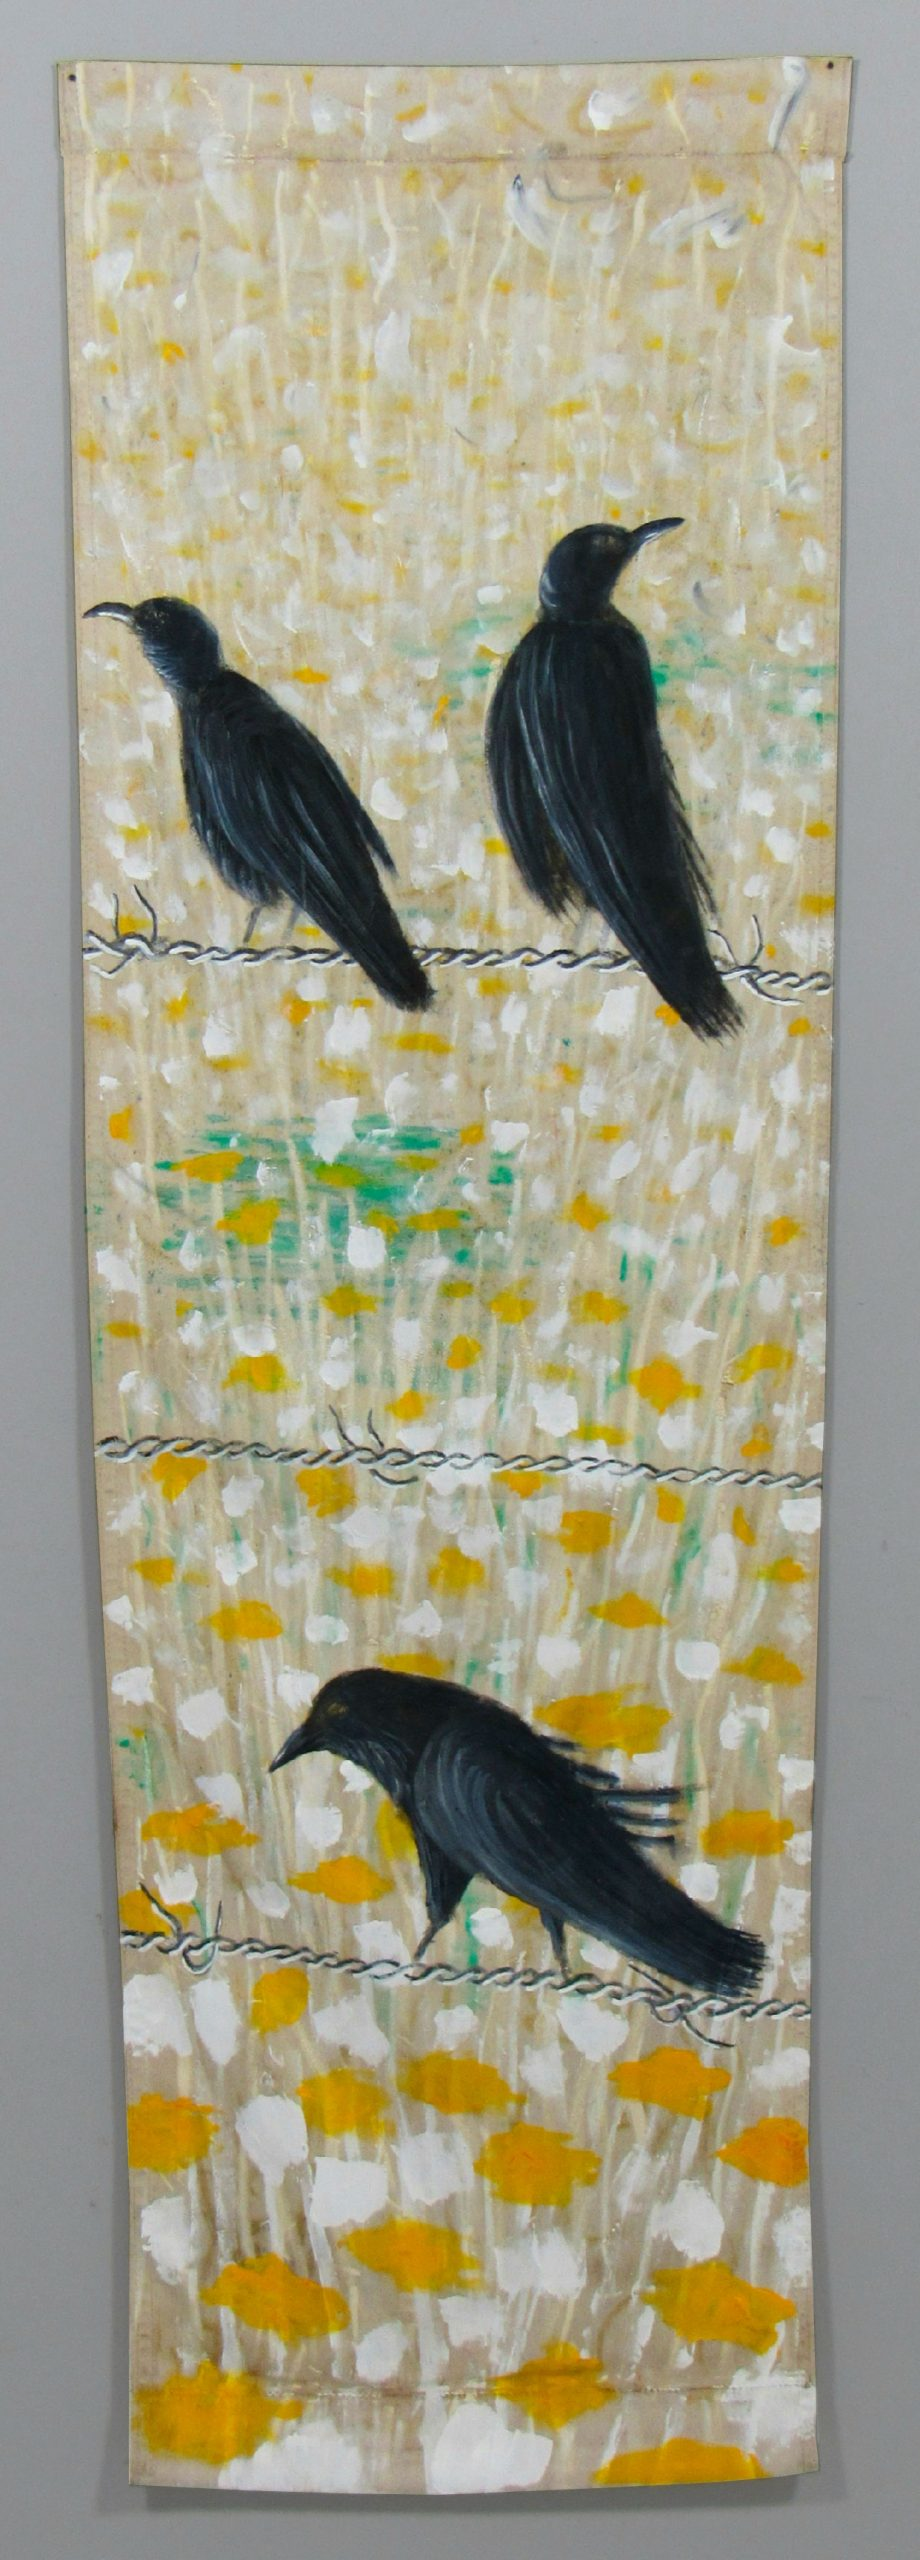 Painting birds on barbed wire by visual artist Guillermo del Valle